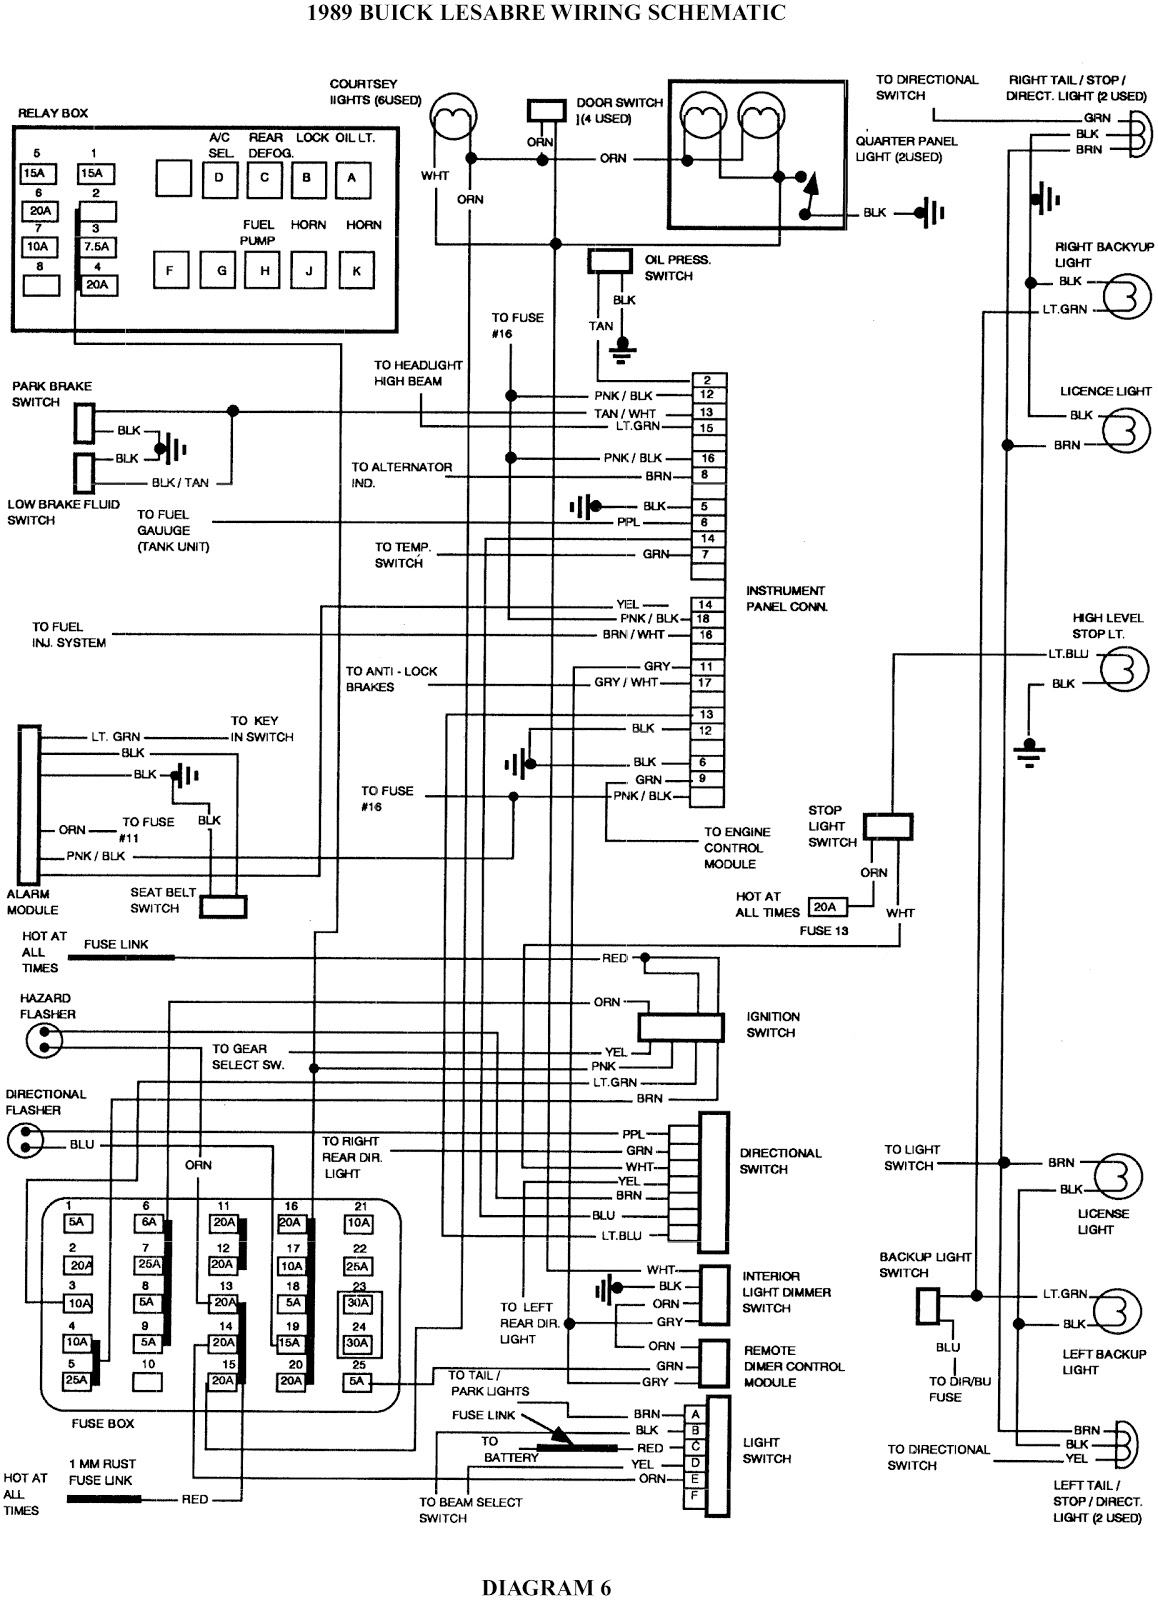 2003 Buick Rendezvous Fuel Pump Wiring Diagram Off Grid Solar System Australia 1989 Lesabre Schematic | Diagrams Solutions